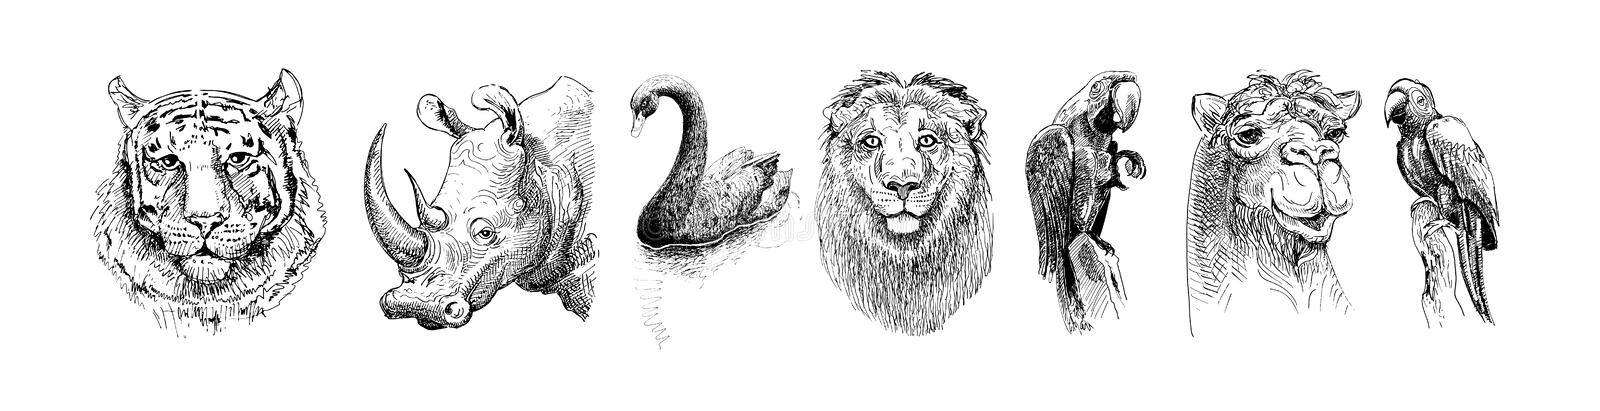 Set of safari head animals, black and white sketch drawing royalty free illustration